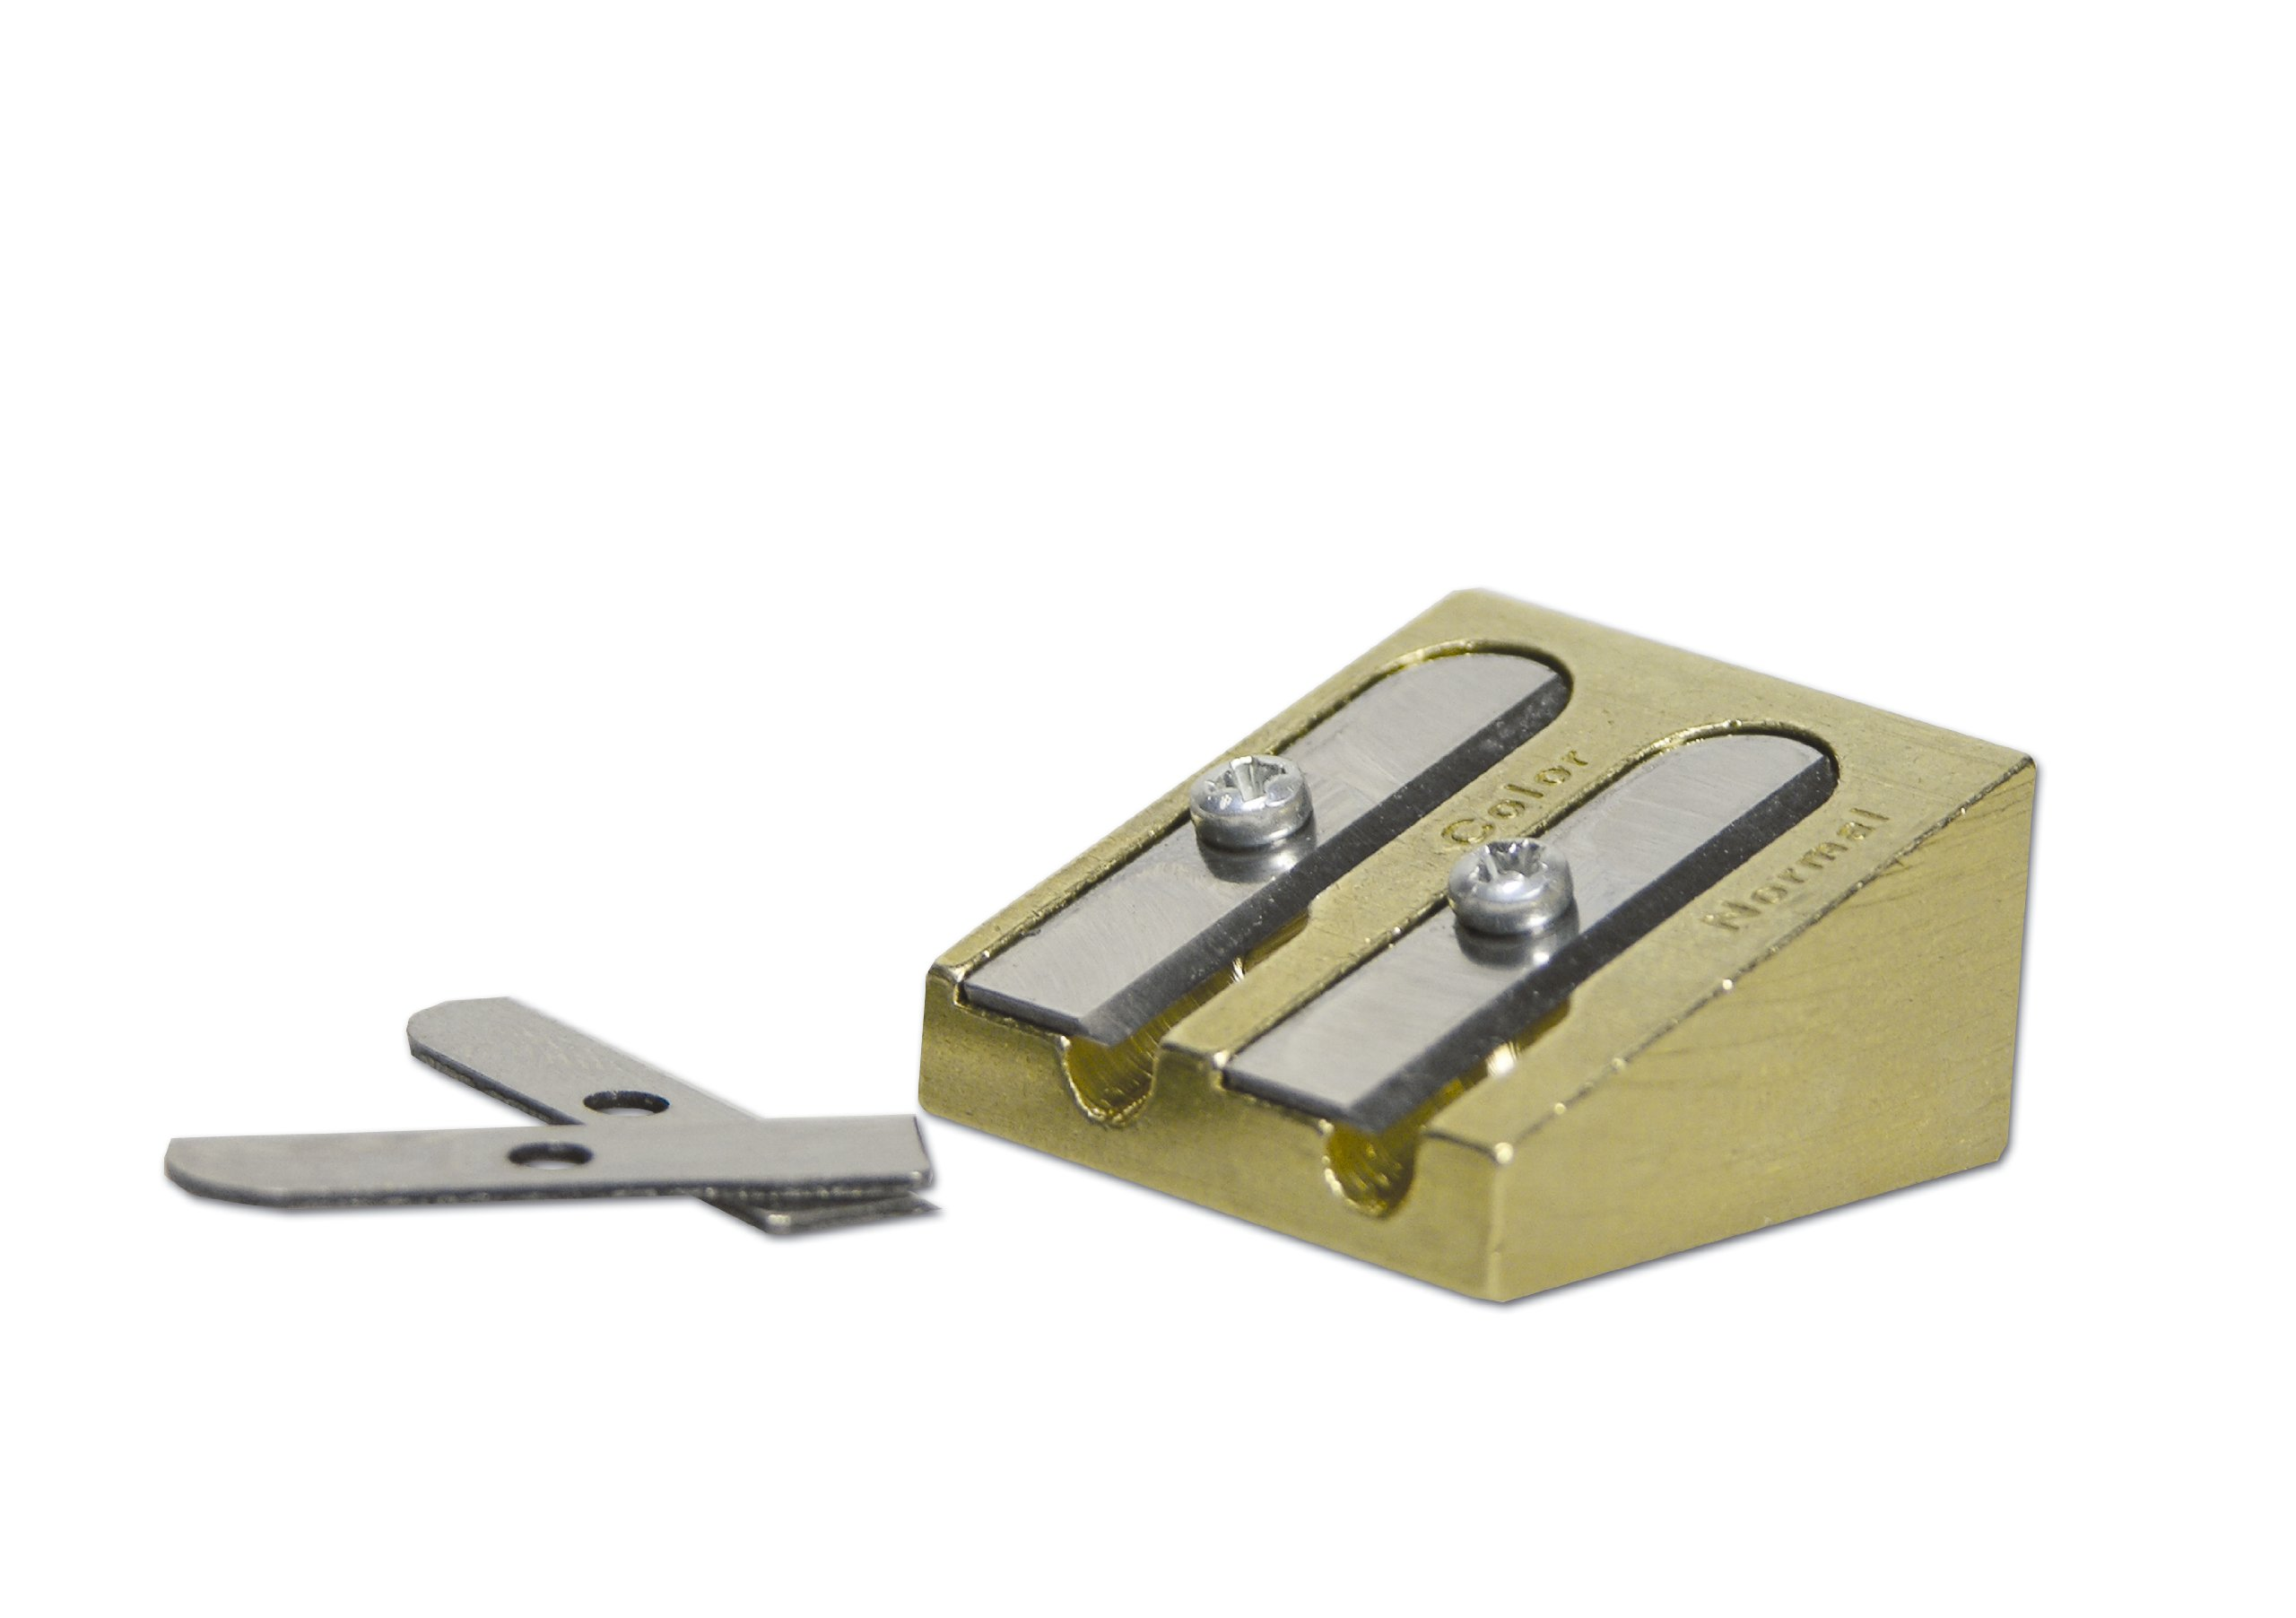 Dual Hole Sharpener with Replacement Blades Bruynzeel Gold